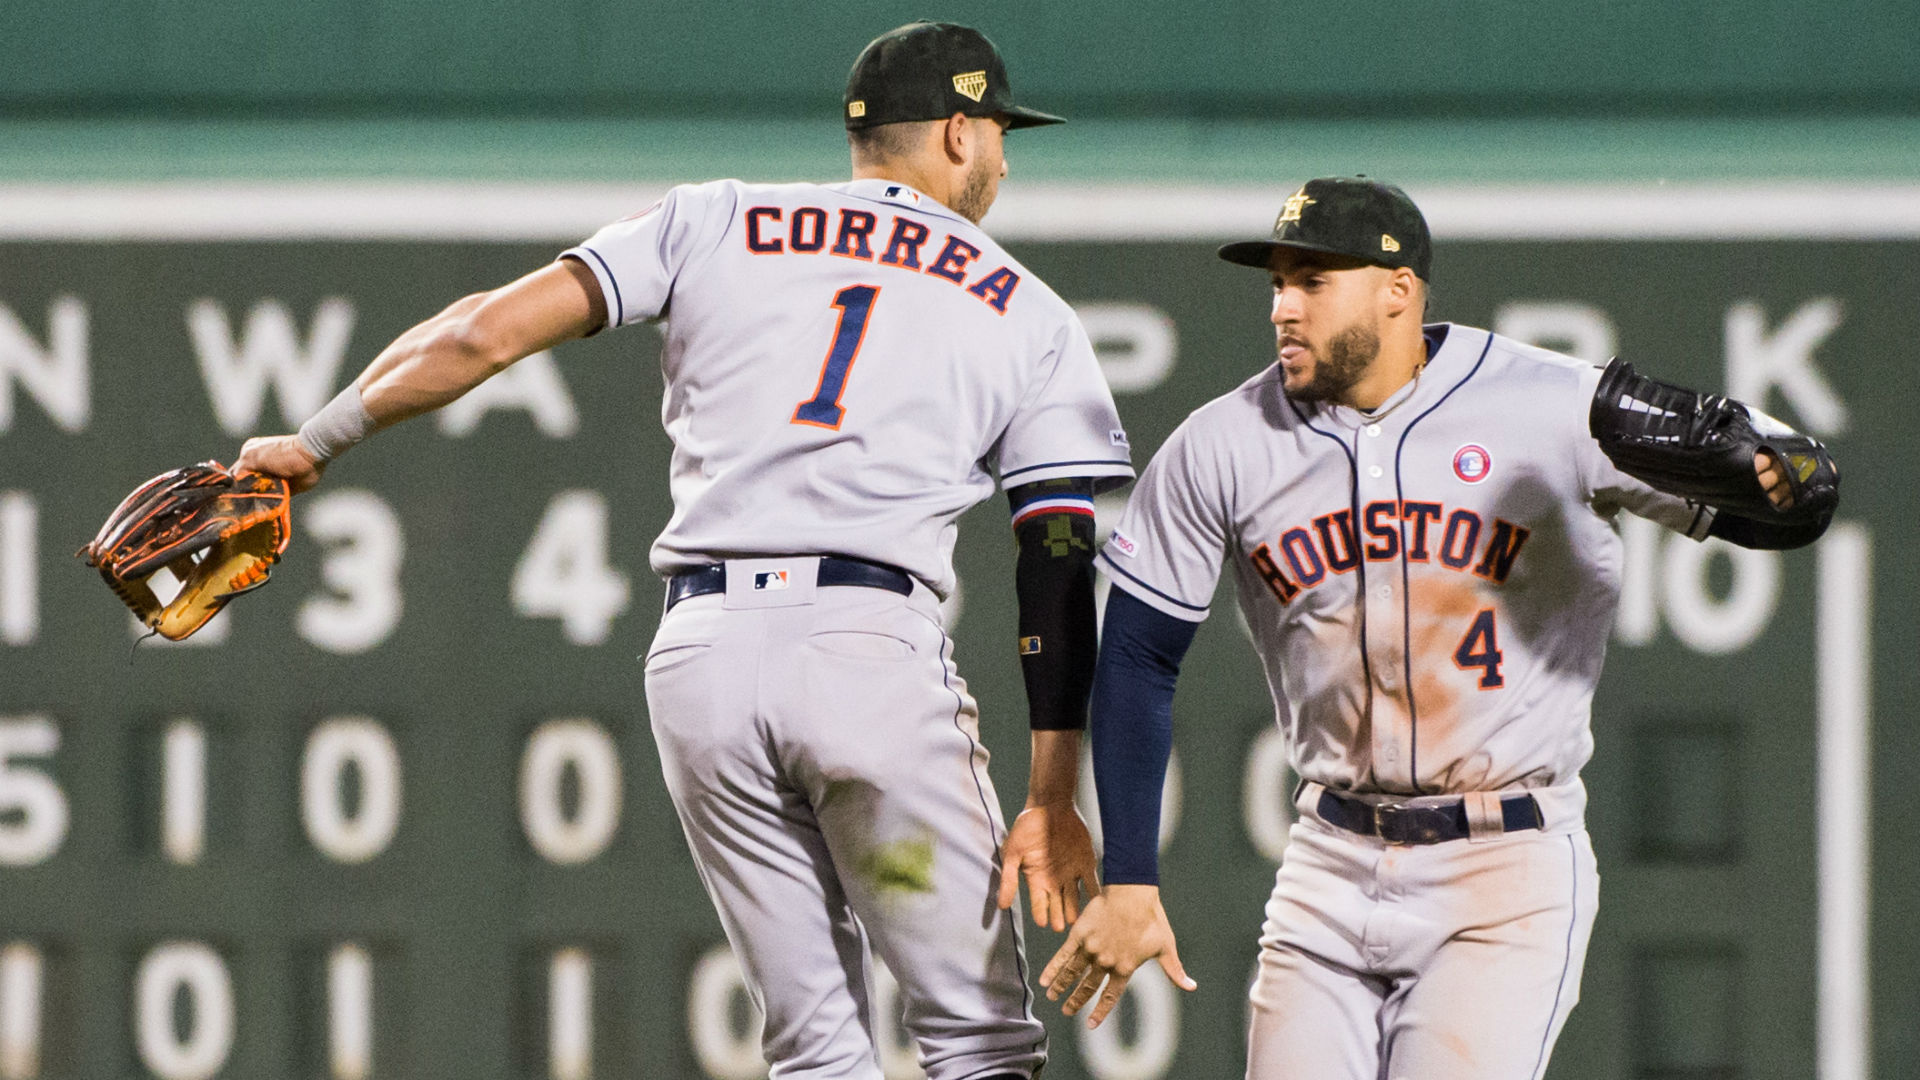 MLB wrap: Astros get 10th straight win after 7-3 defeat of Red Sox